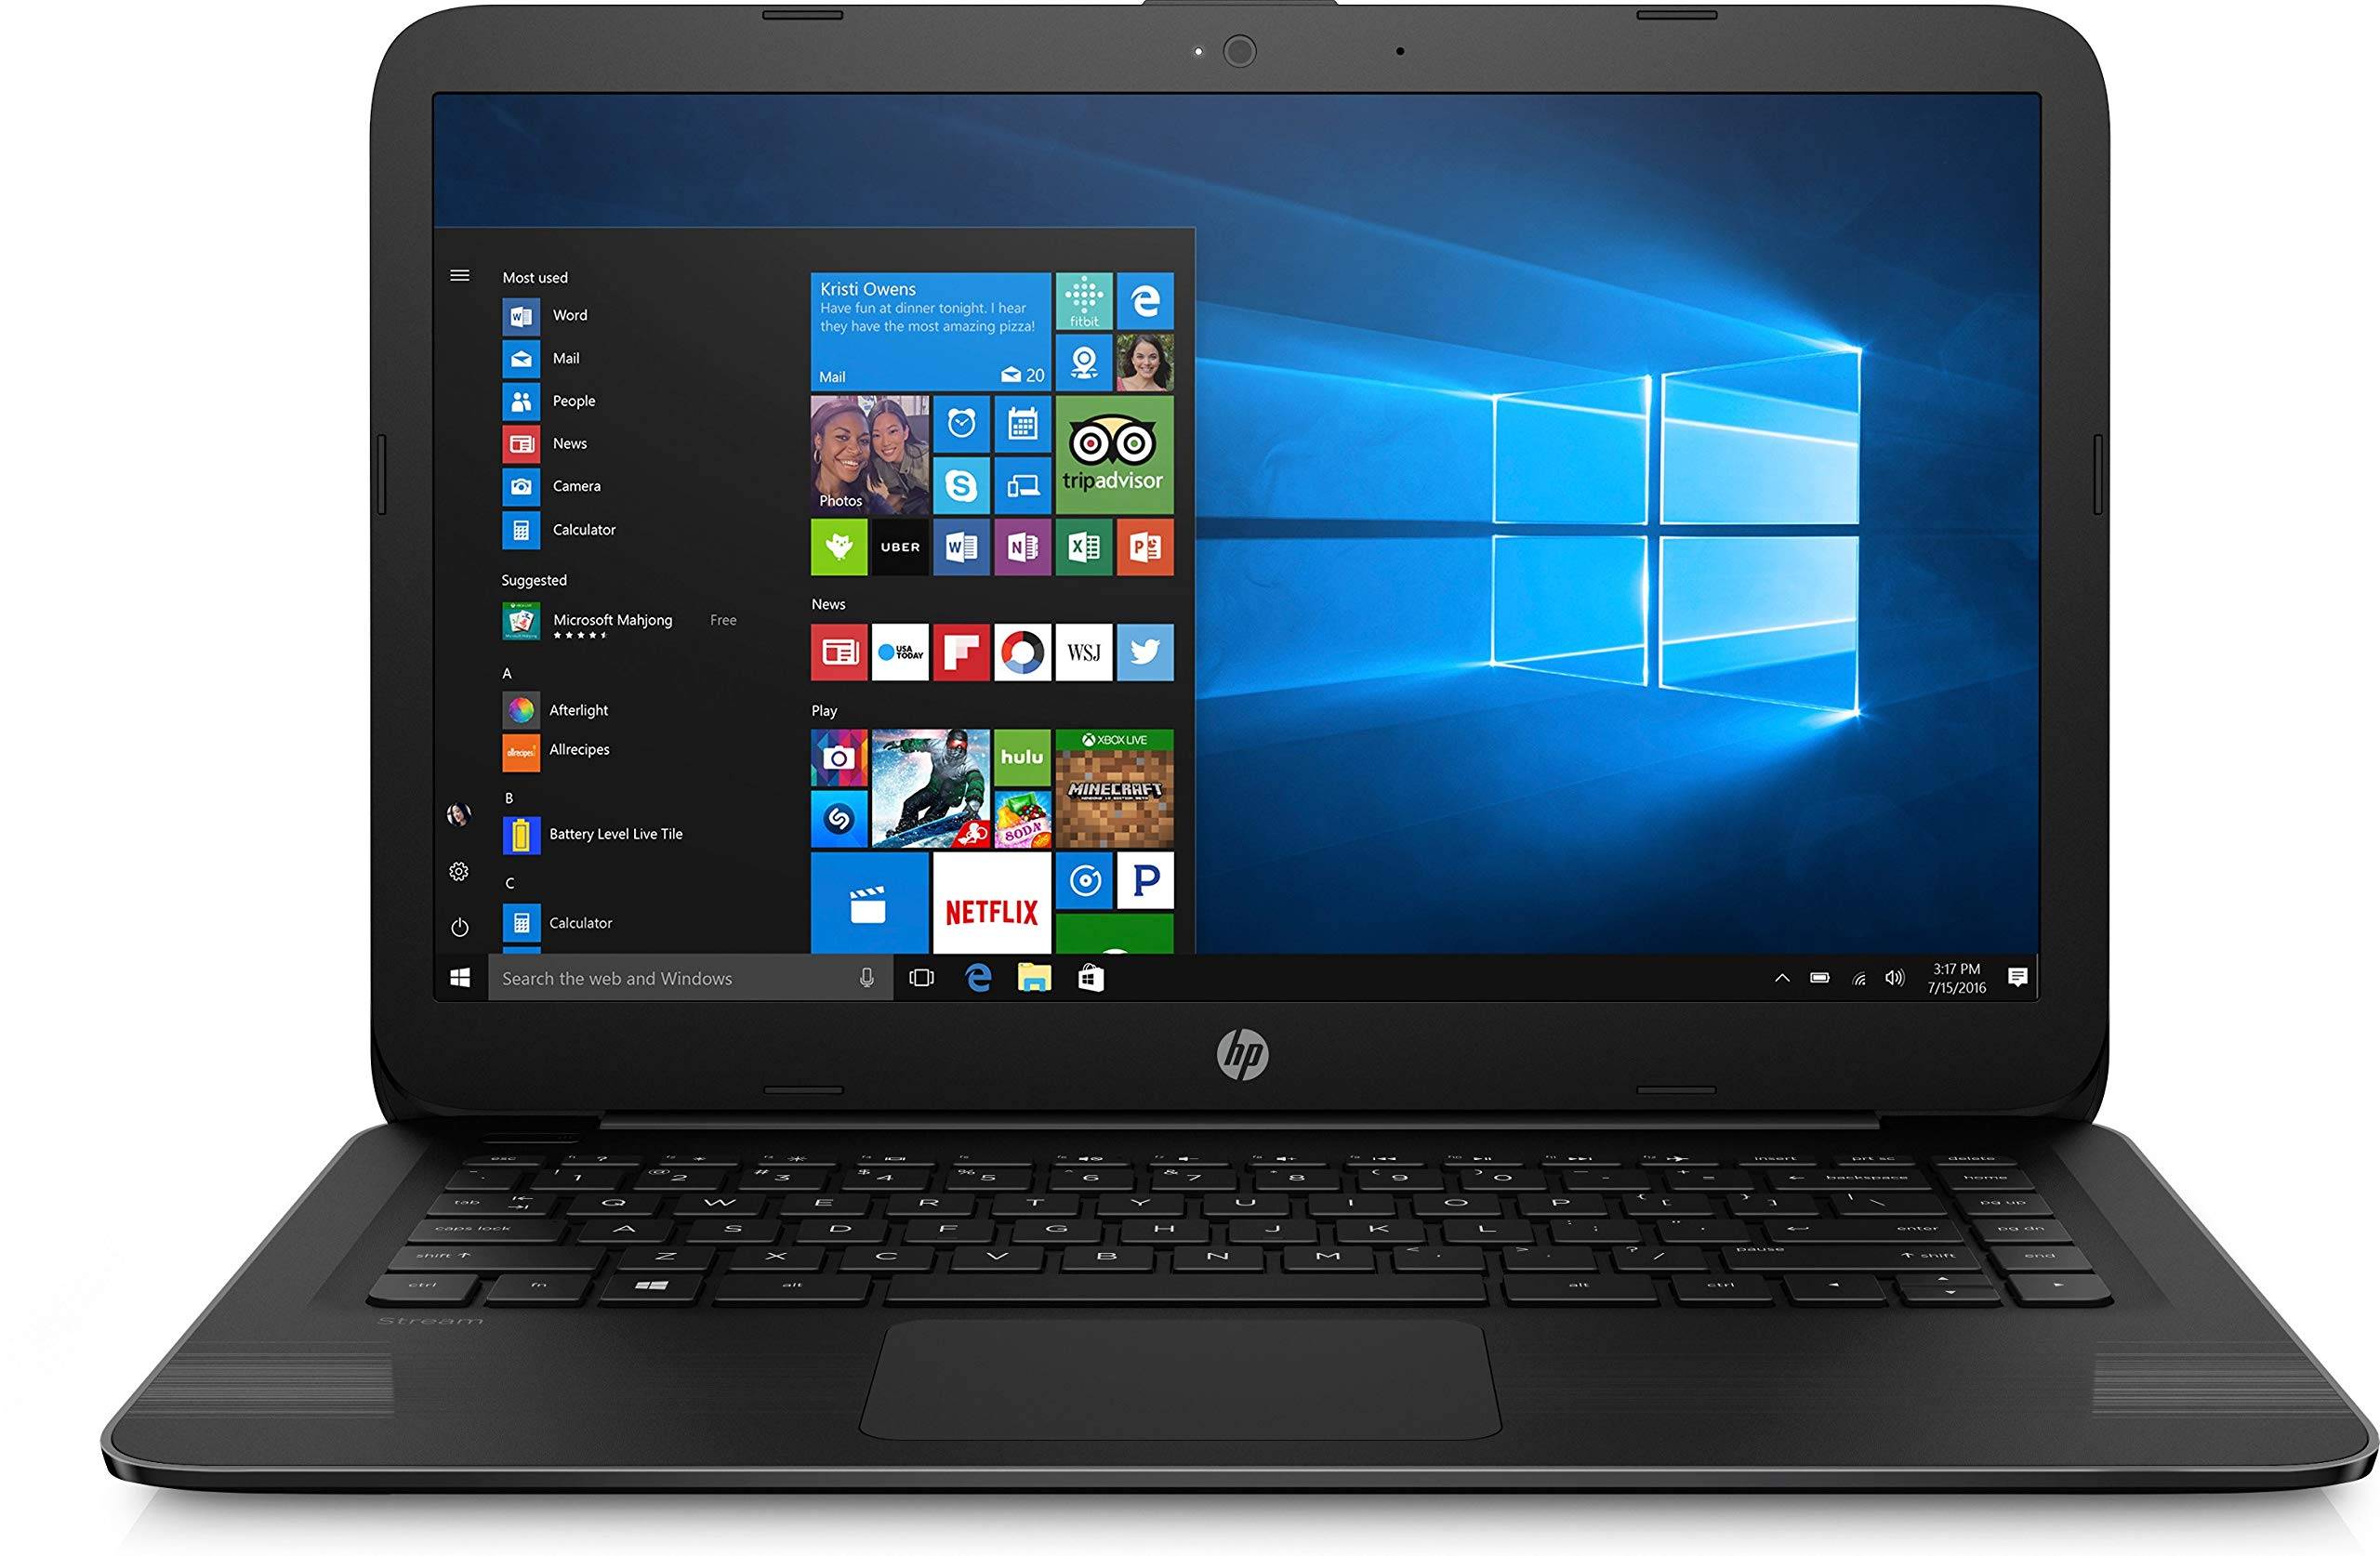 "2018 Newest HP 14"" Flagship Laptop PC - Intel Dual Core up to 2.48GHz, 4GB RAM, 32GB eMMC, free 1-yr Office 365, 1TB OneDrive Cloud, DTS Studio, WLAN, HDMI, Webcam, USB 3.0, Windows 10 1"